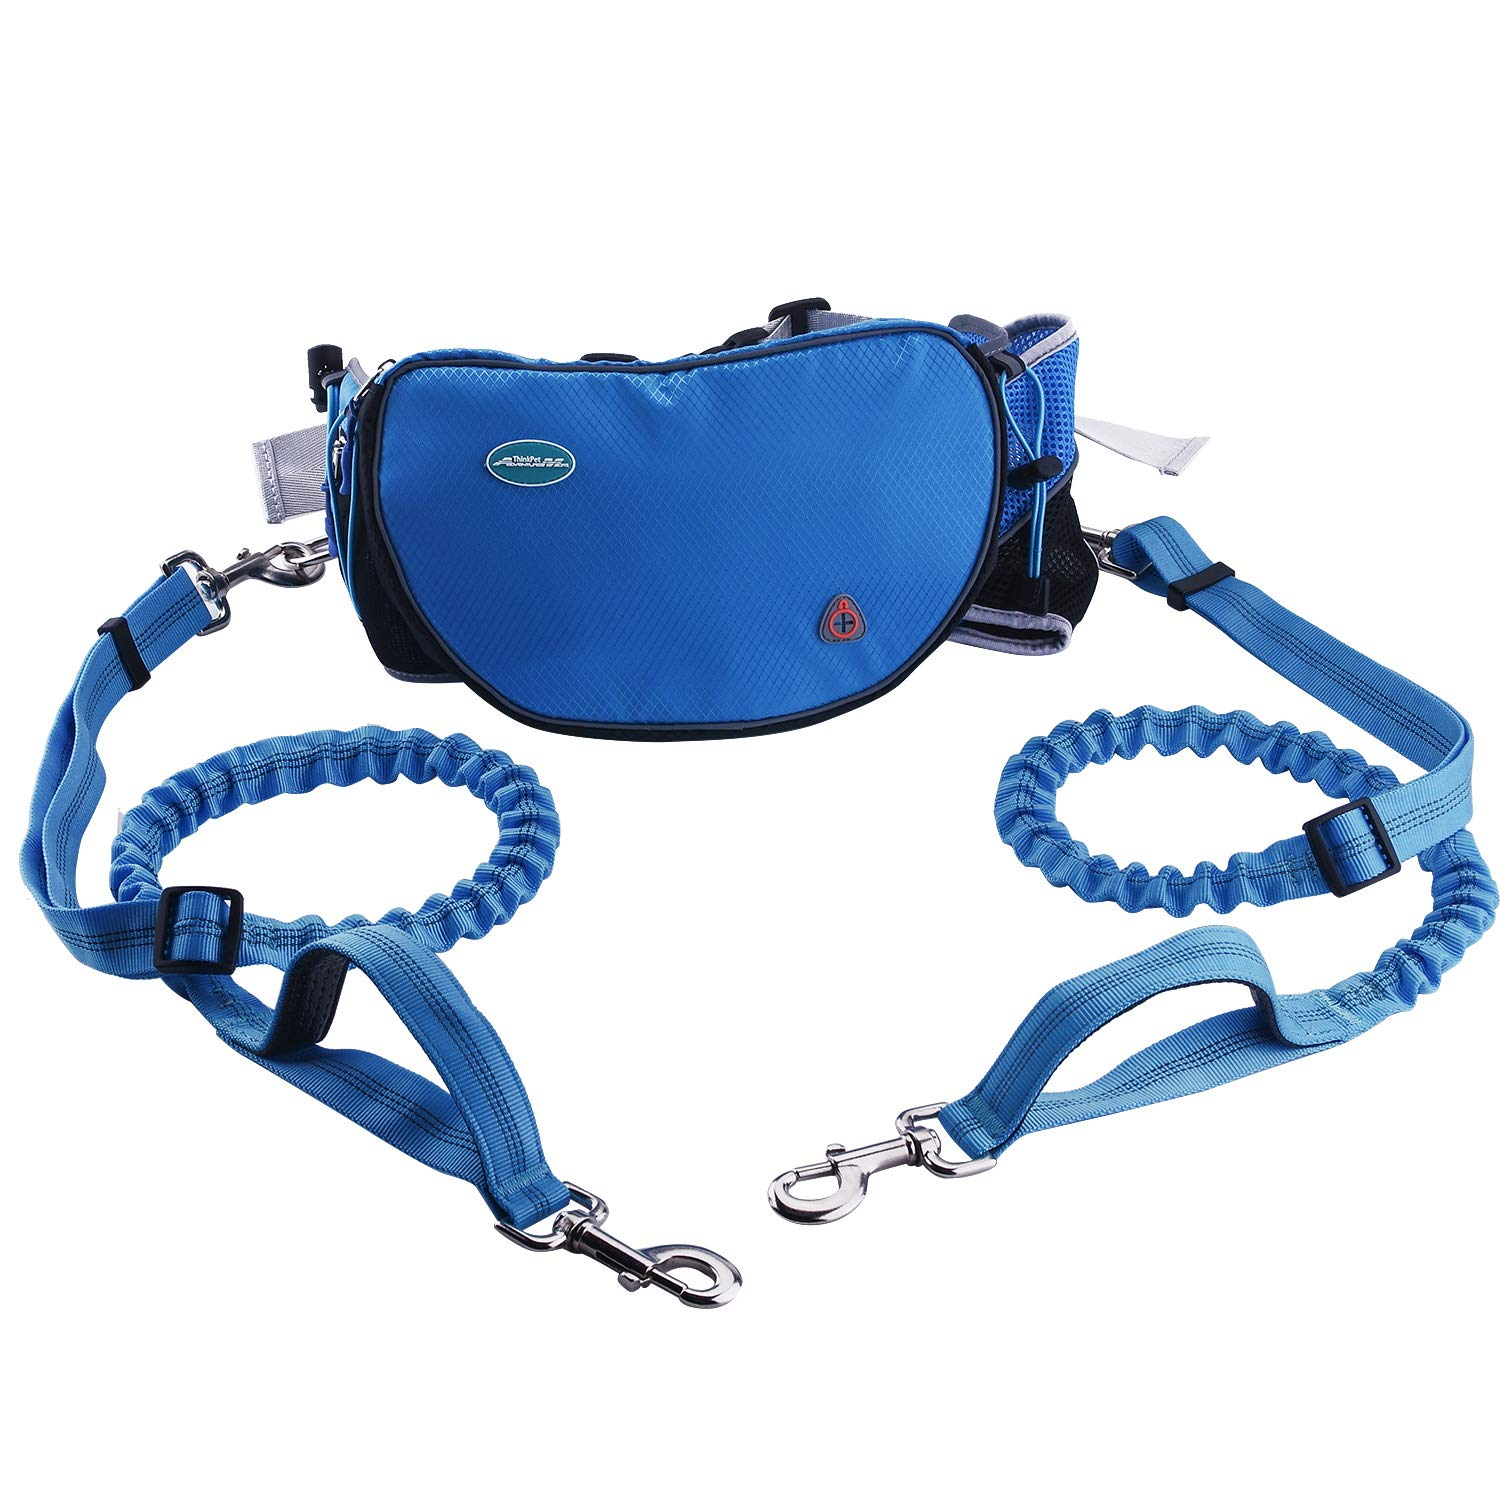 ThinkPet Hands Free Dog Leash for 2 Dogs - Shock Absorbing Bungee Leash for Medium to Large Dogs, Adjustable Waist Belt from 25.6'' to 49'', Dog Treat Pouch & Bottle Holder by ThinkPet